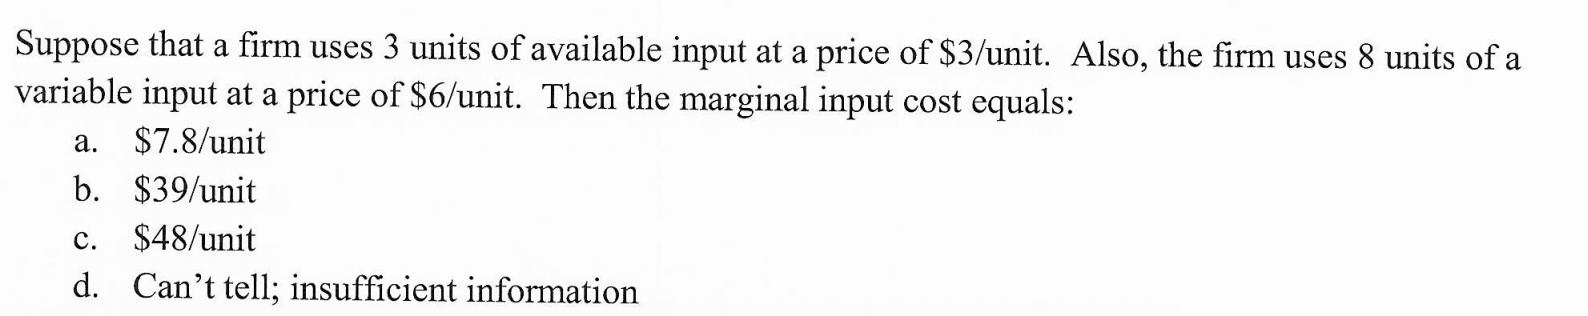 Suppose that a firm uses 3 units of available input at a price of $3/unit. Also, the firm uses 8 units of a variable input at a price of $6/unit. Then the marginal input cost equals: $7.8/unit а. b. $39/unit $48/unit с. d. Can't tell; insufficient information